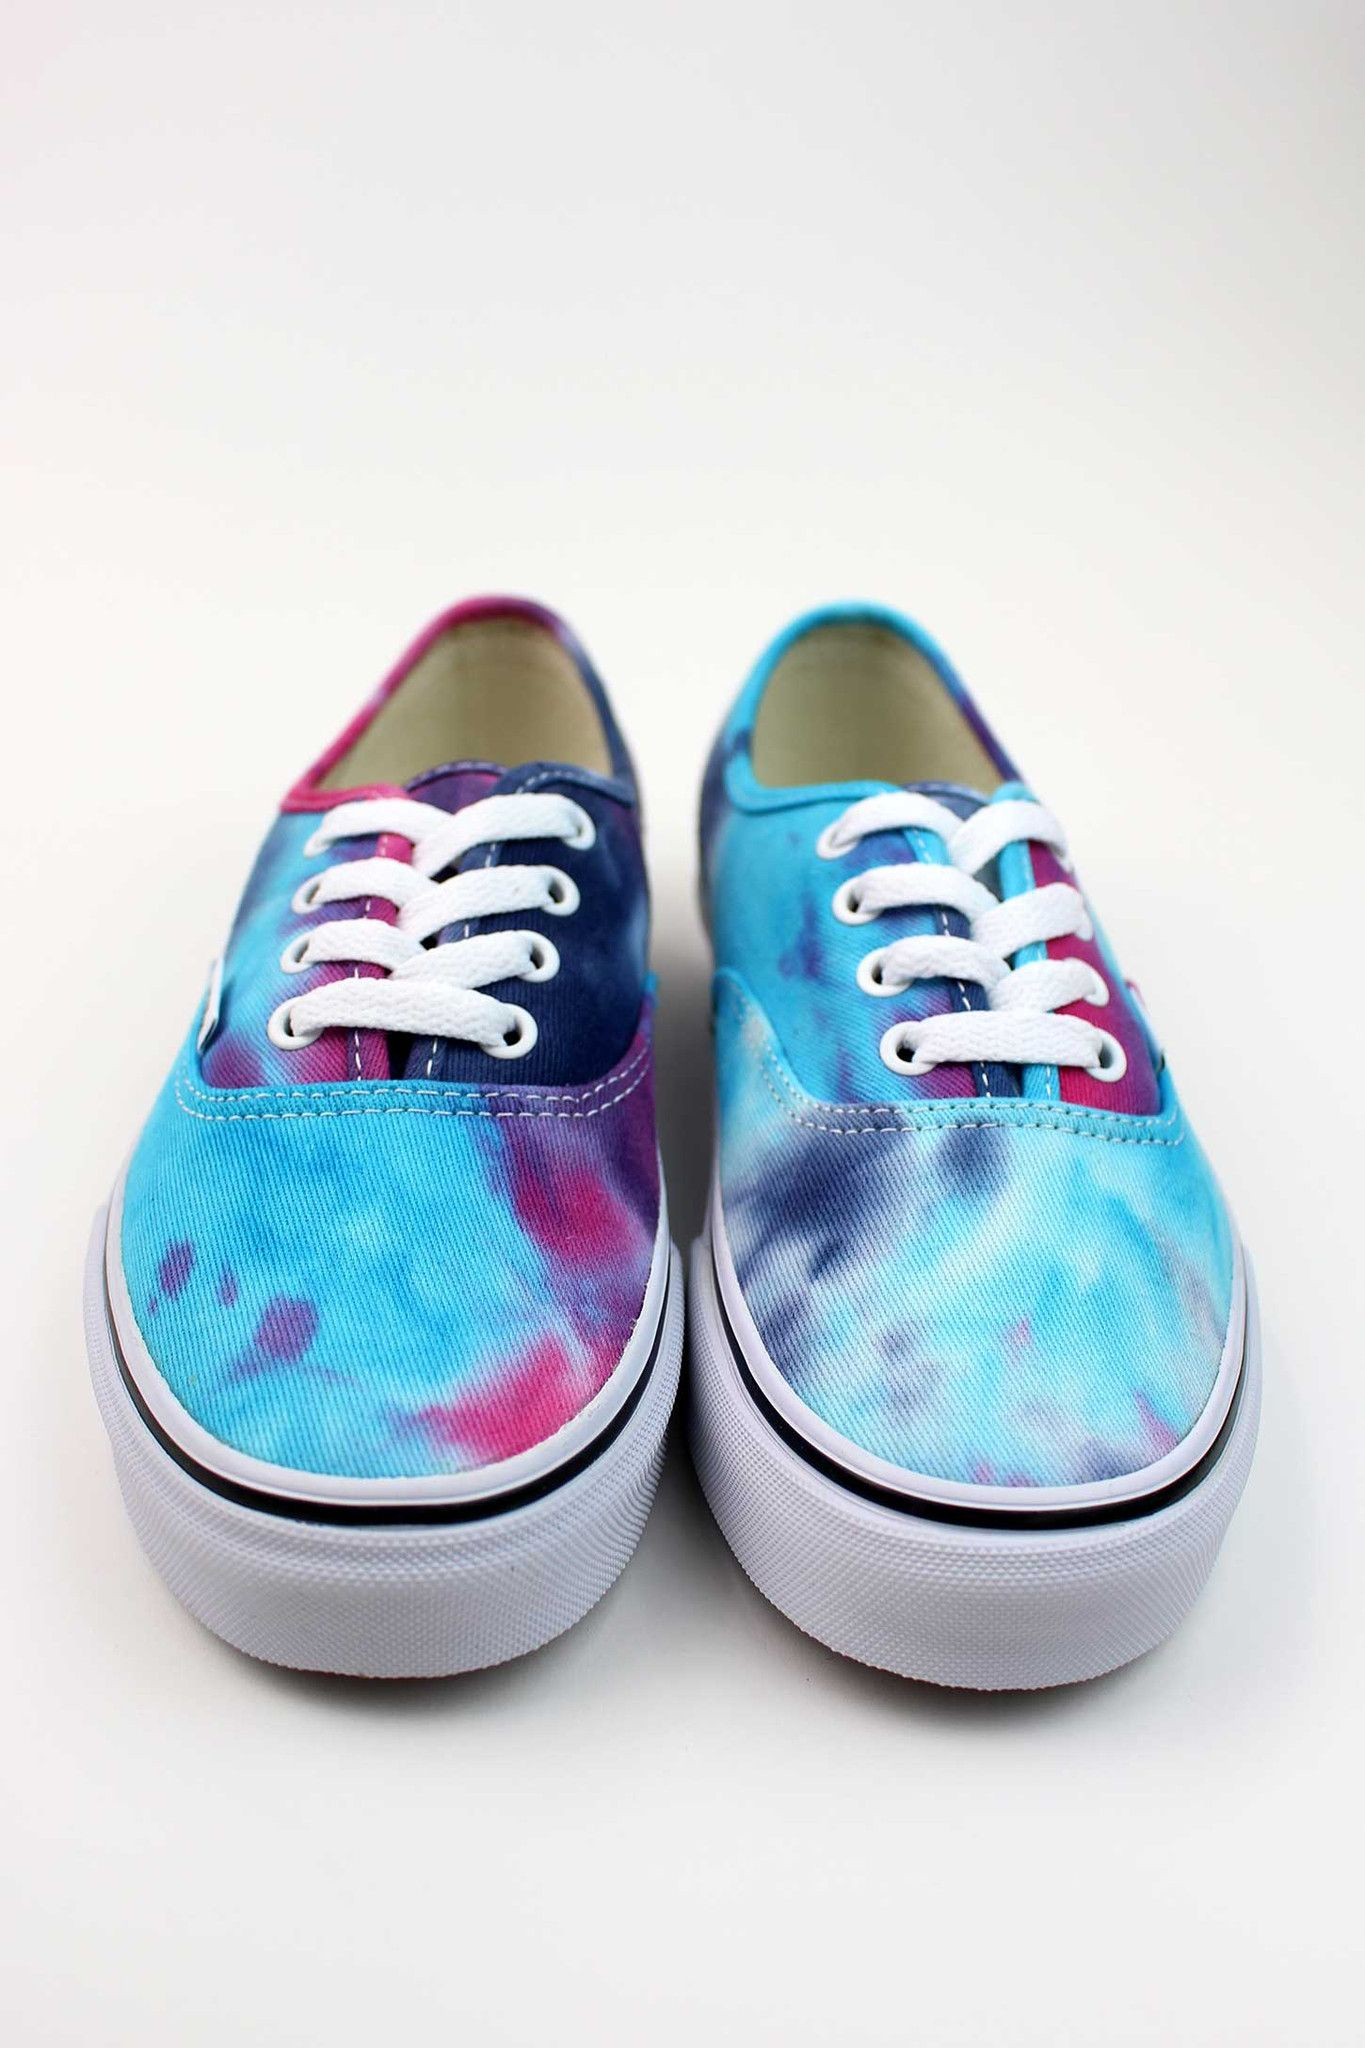 The Tie Dye Authentic efbd3895daf69